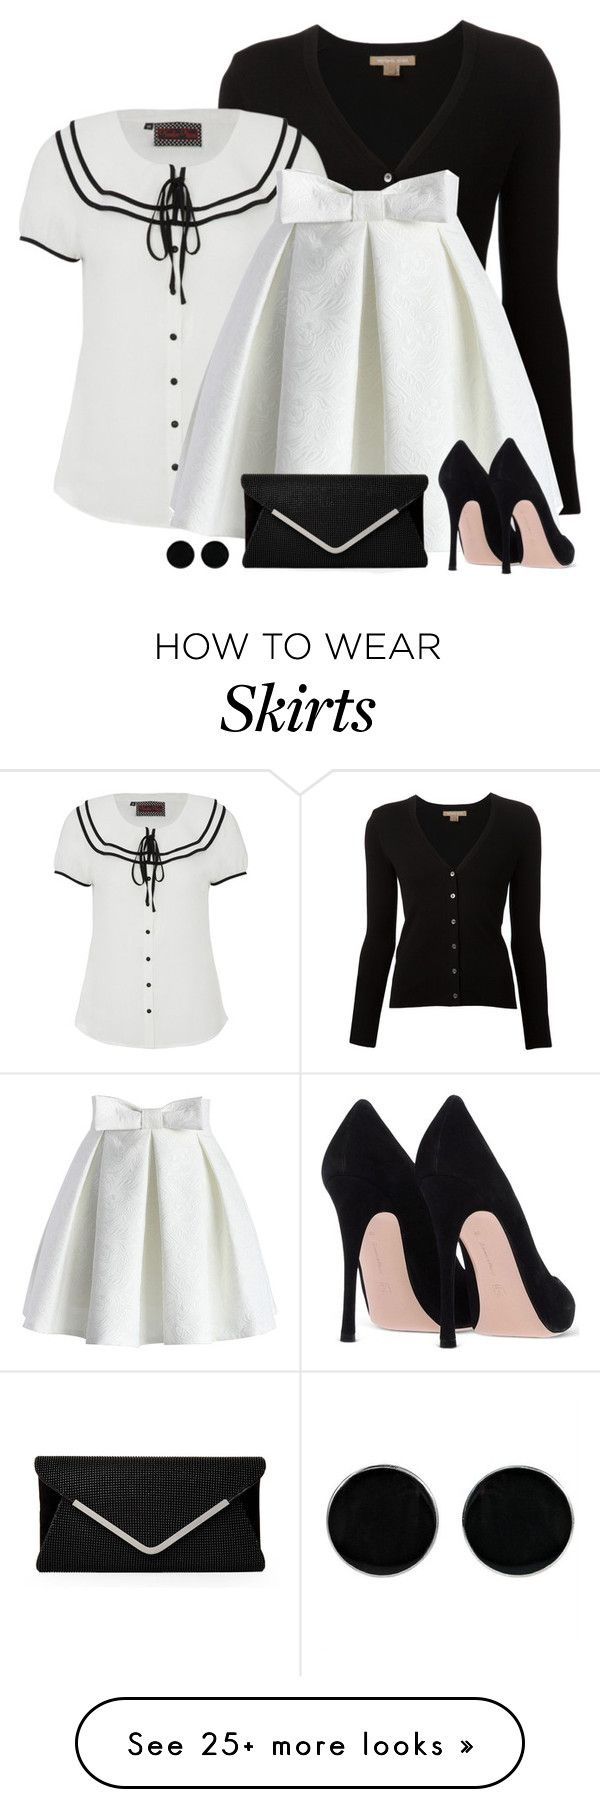 """""""B&W"""" by divacrafts on Polyvore featuring Michael Kors, Voodoo Vixen, Chicwish, AeraVida and Original"""